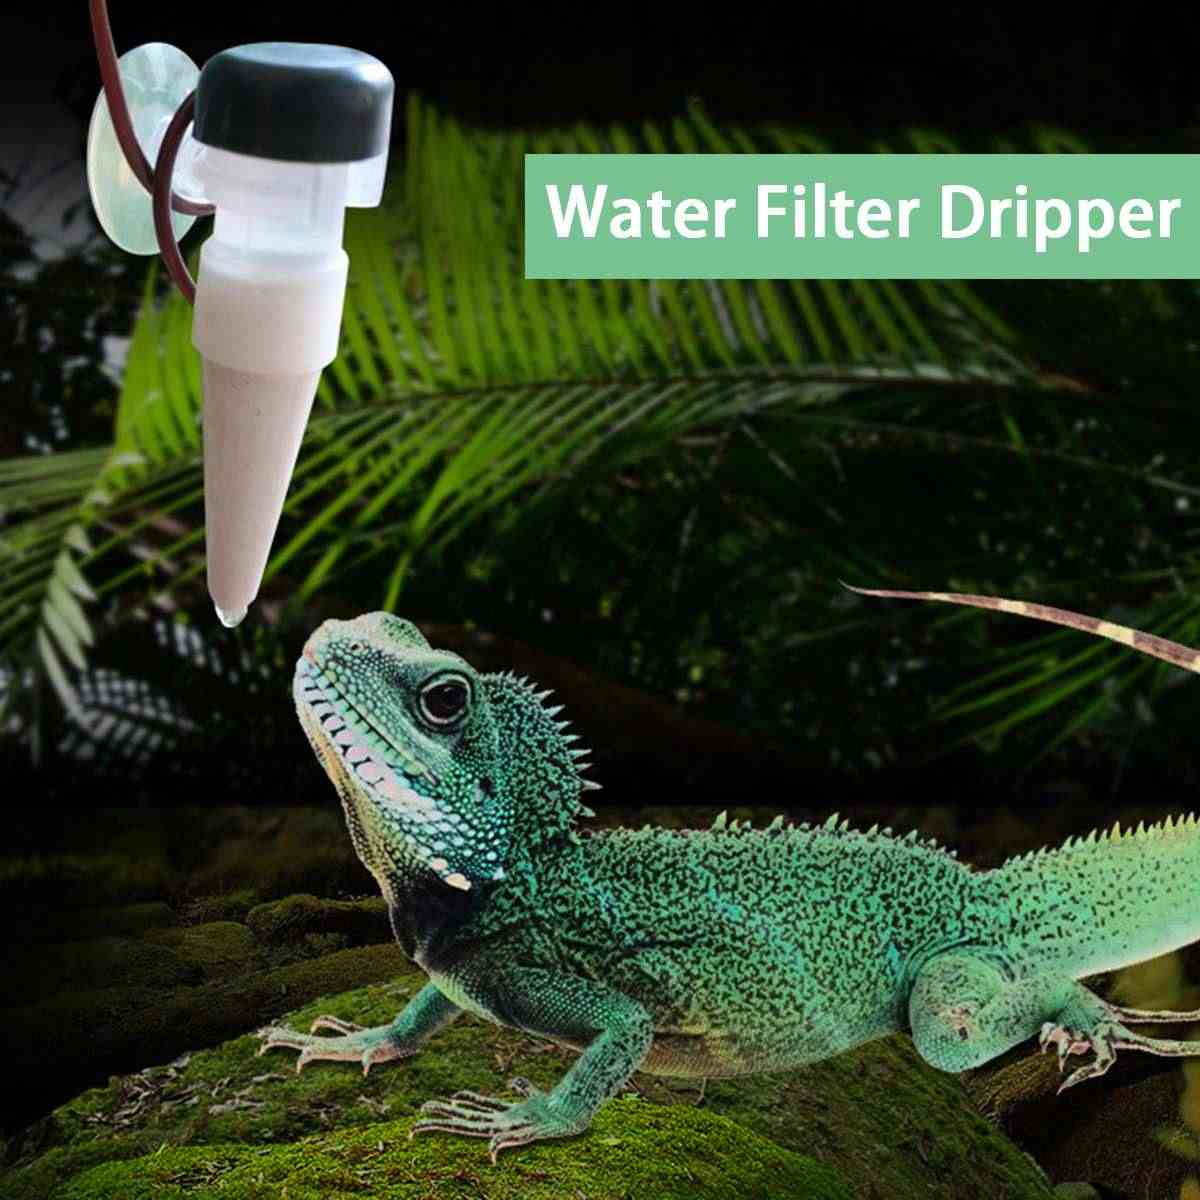 1.3L Reptil Air Filter Dripper Drip Sistem Air Mancur Minum Dispenser untuk Bunglon Kadal Gecko Horned Frogs Humidifier